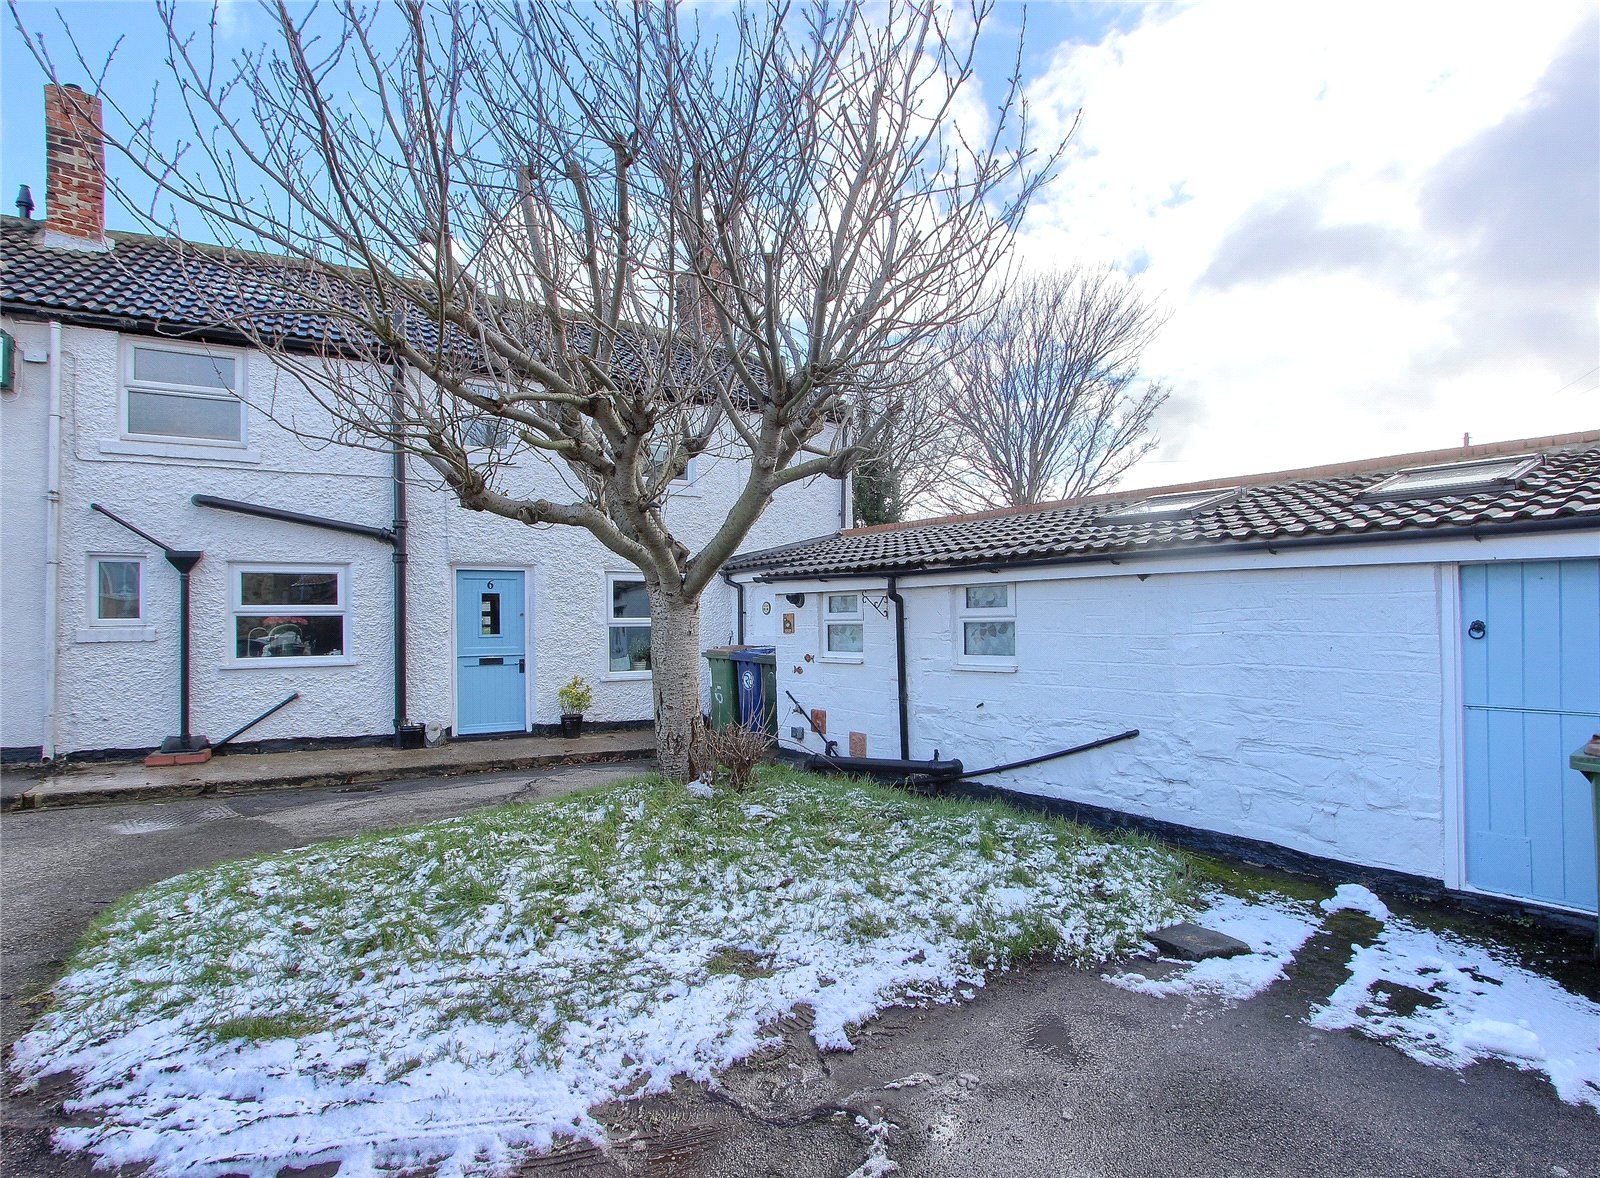 4 bed house for sale in Scrafton Place, Marske-by-the-Sea - Property Image 1